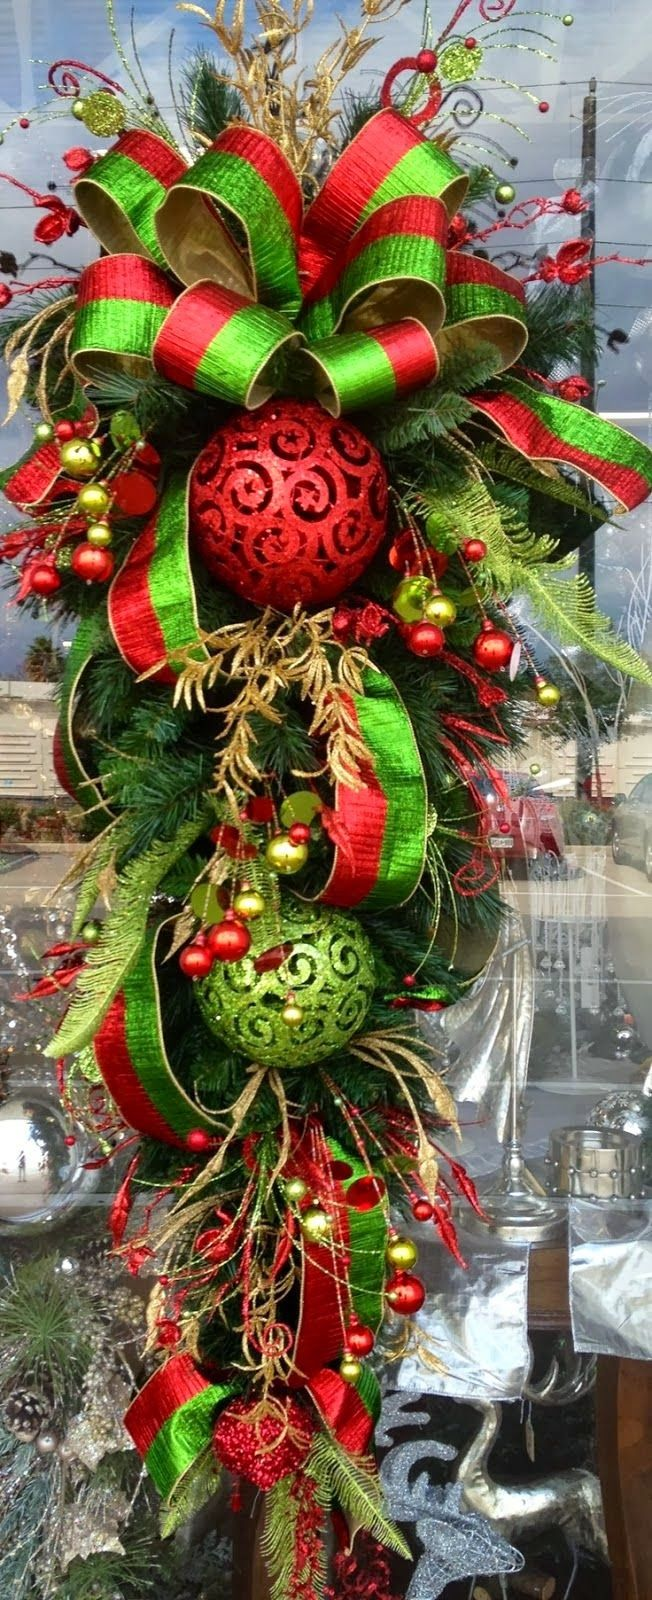 Merry Christmas 600 best Christmas Decor images